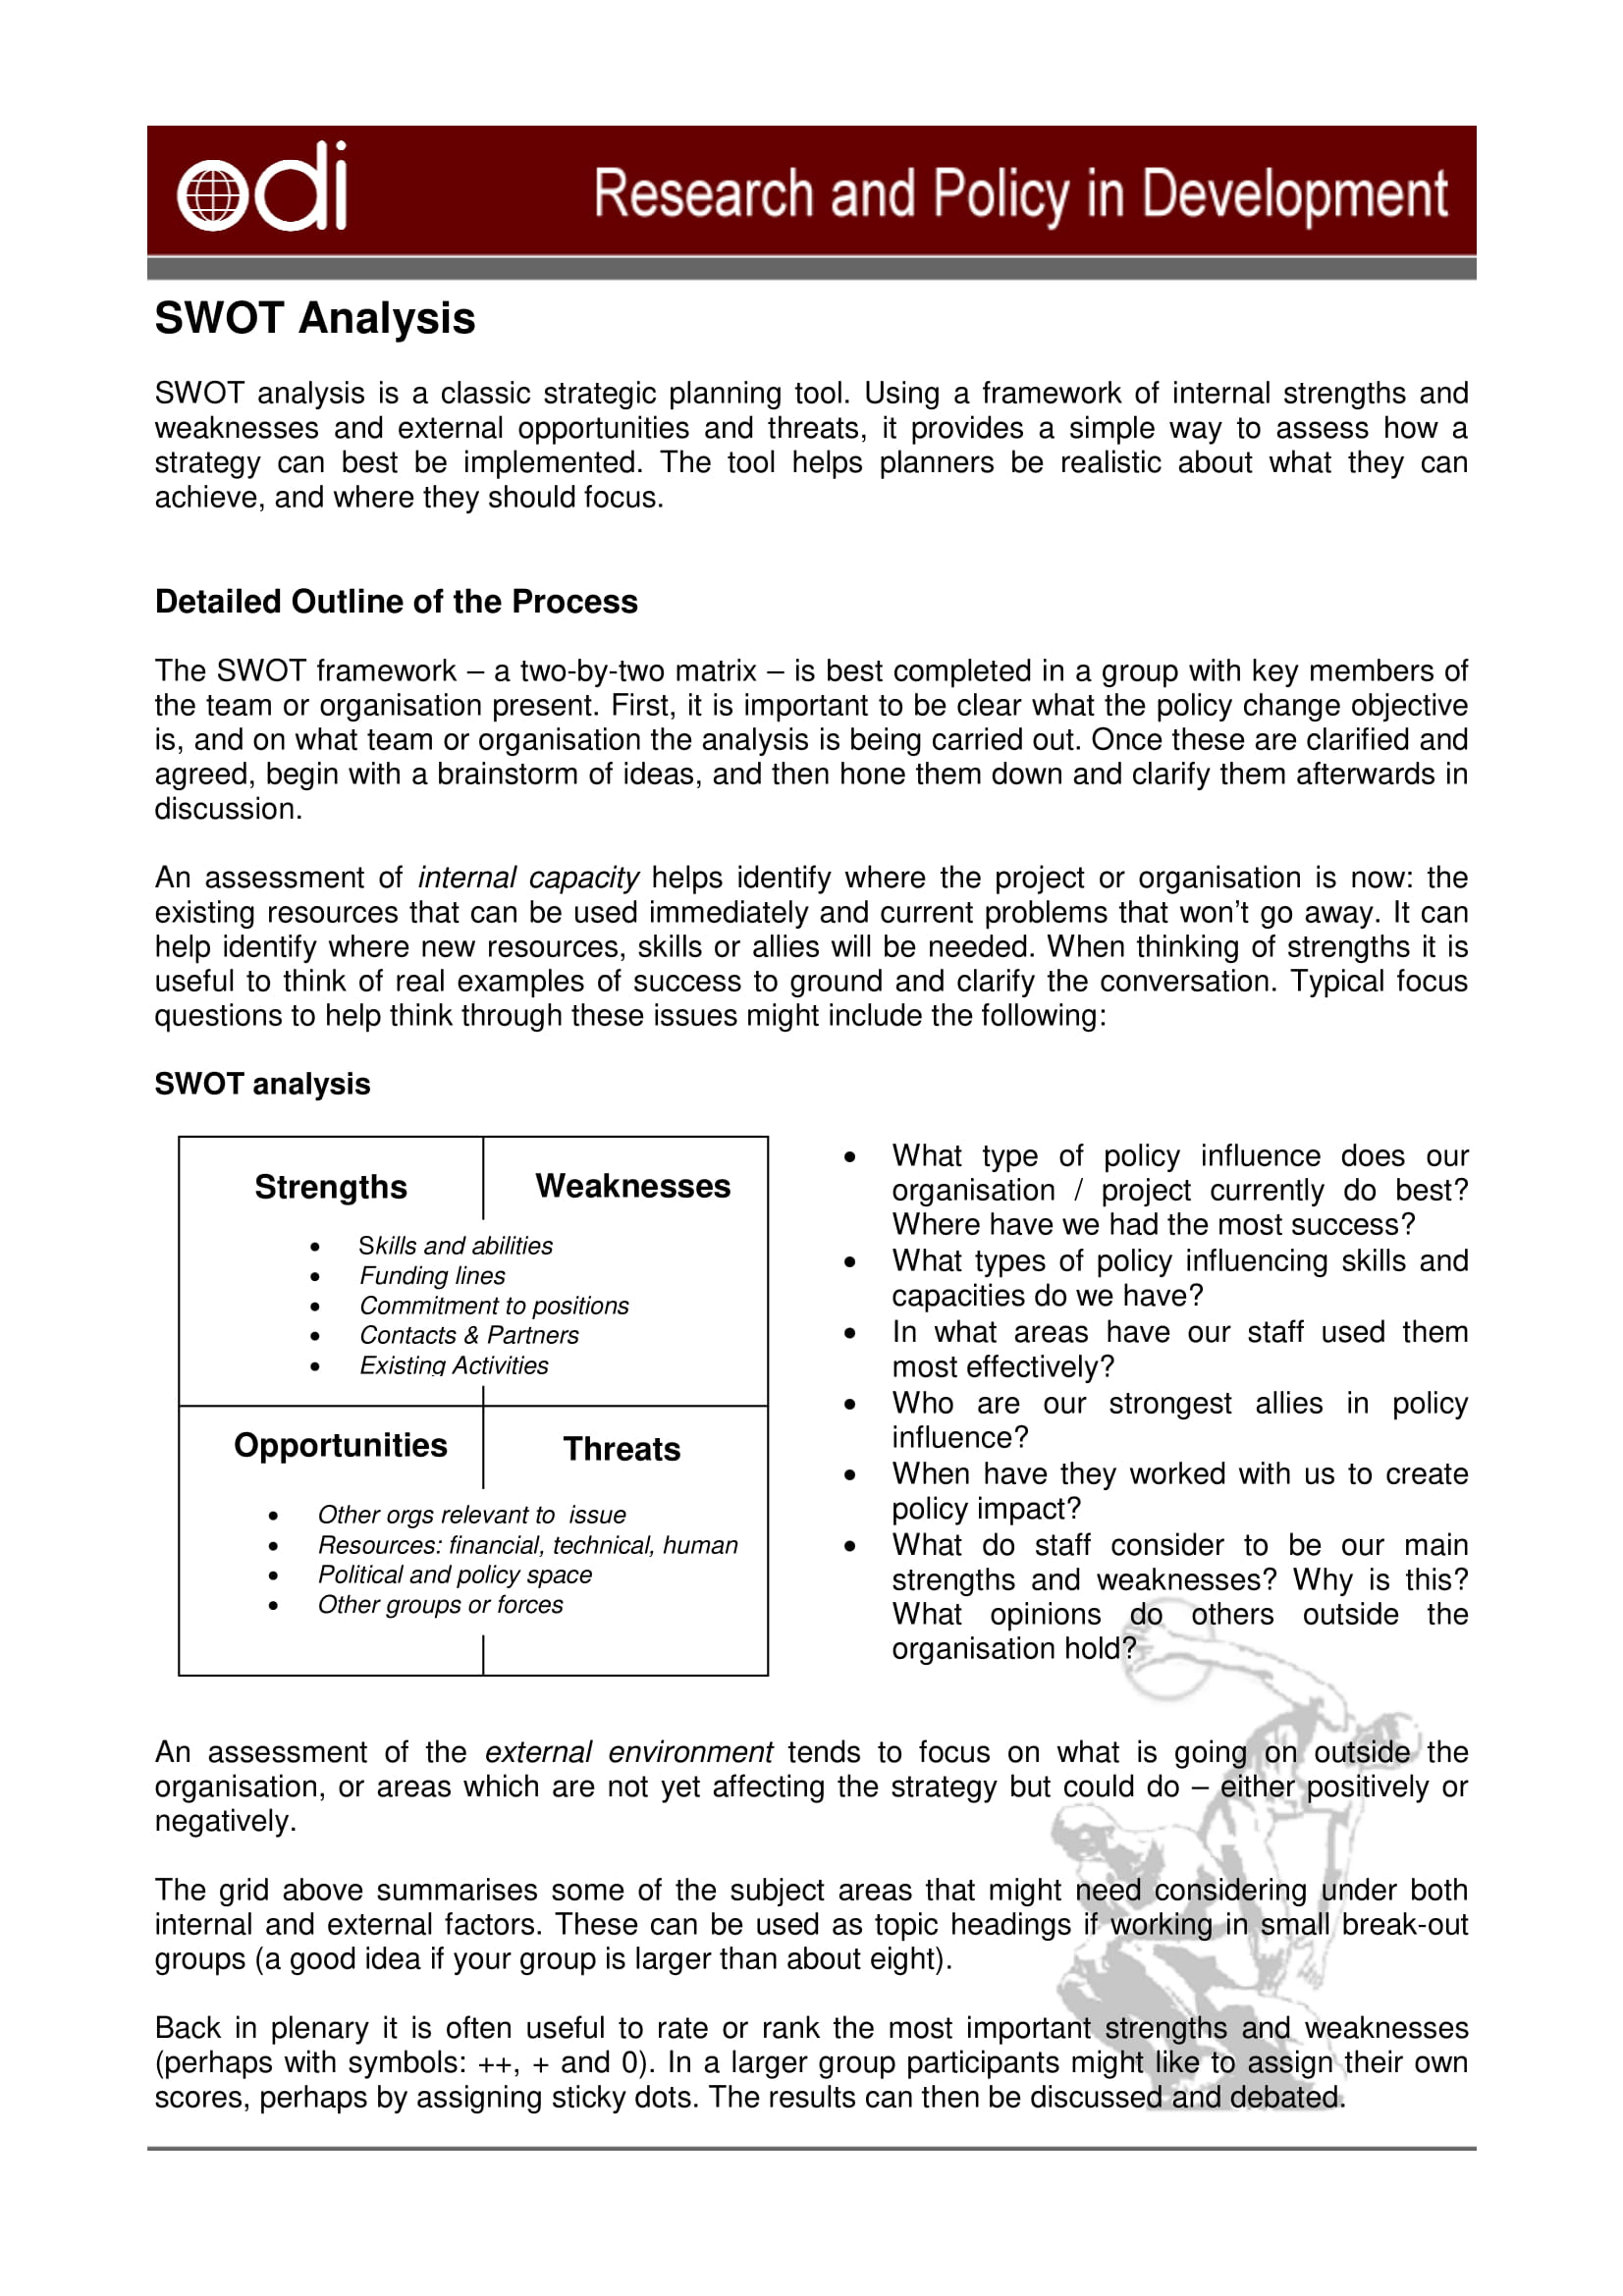 swot analysis chart with brief introduction example 1